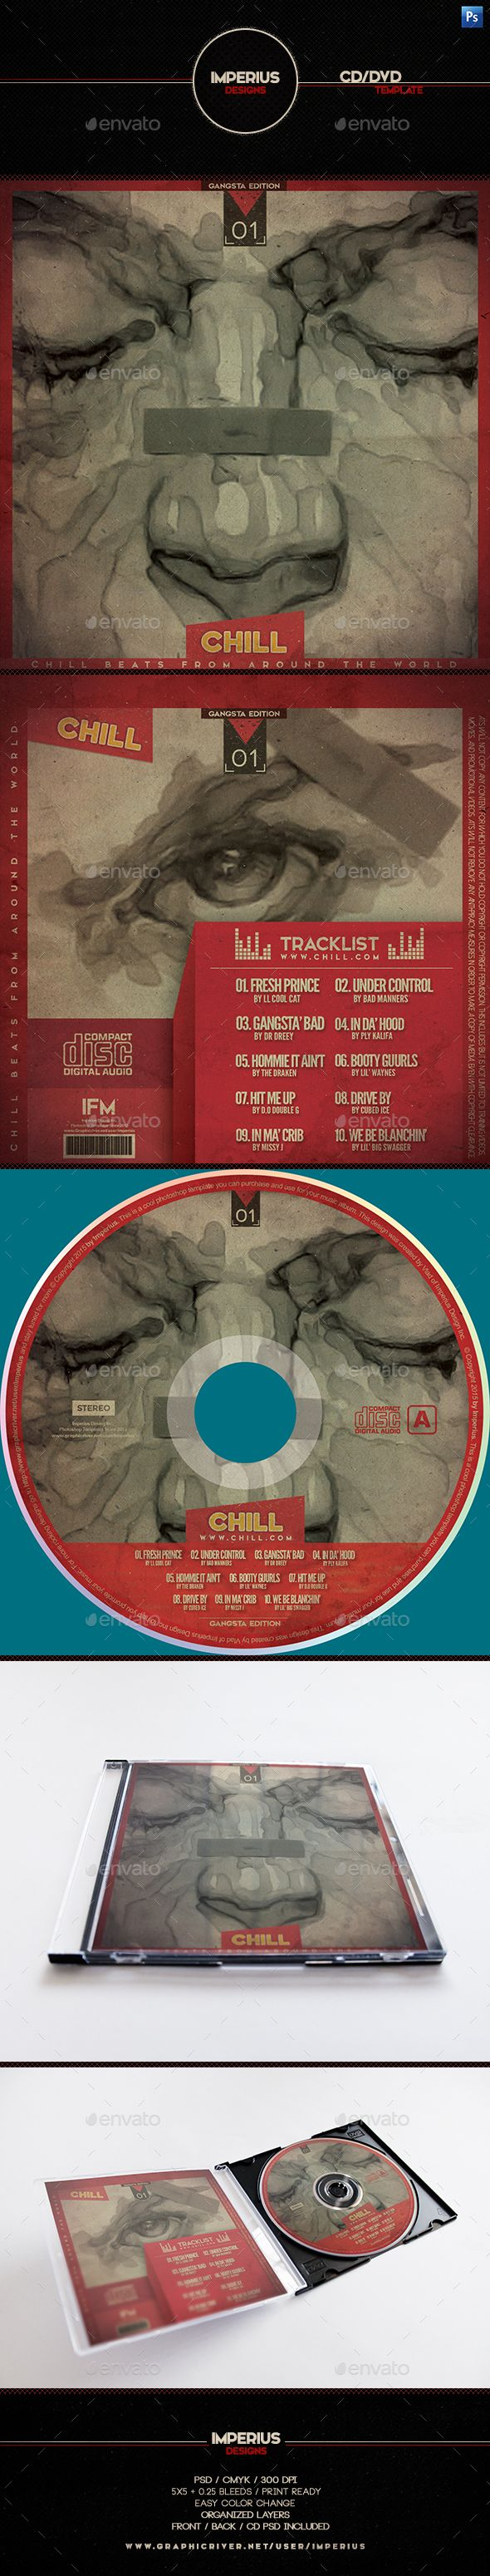 chill cd dvd cover cover template cd cover template and font logo